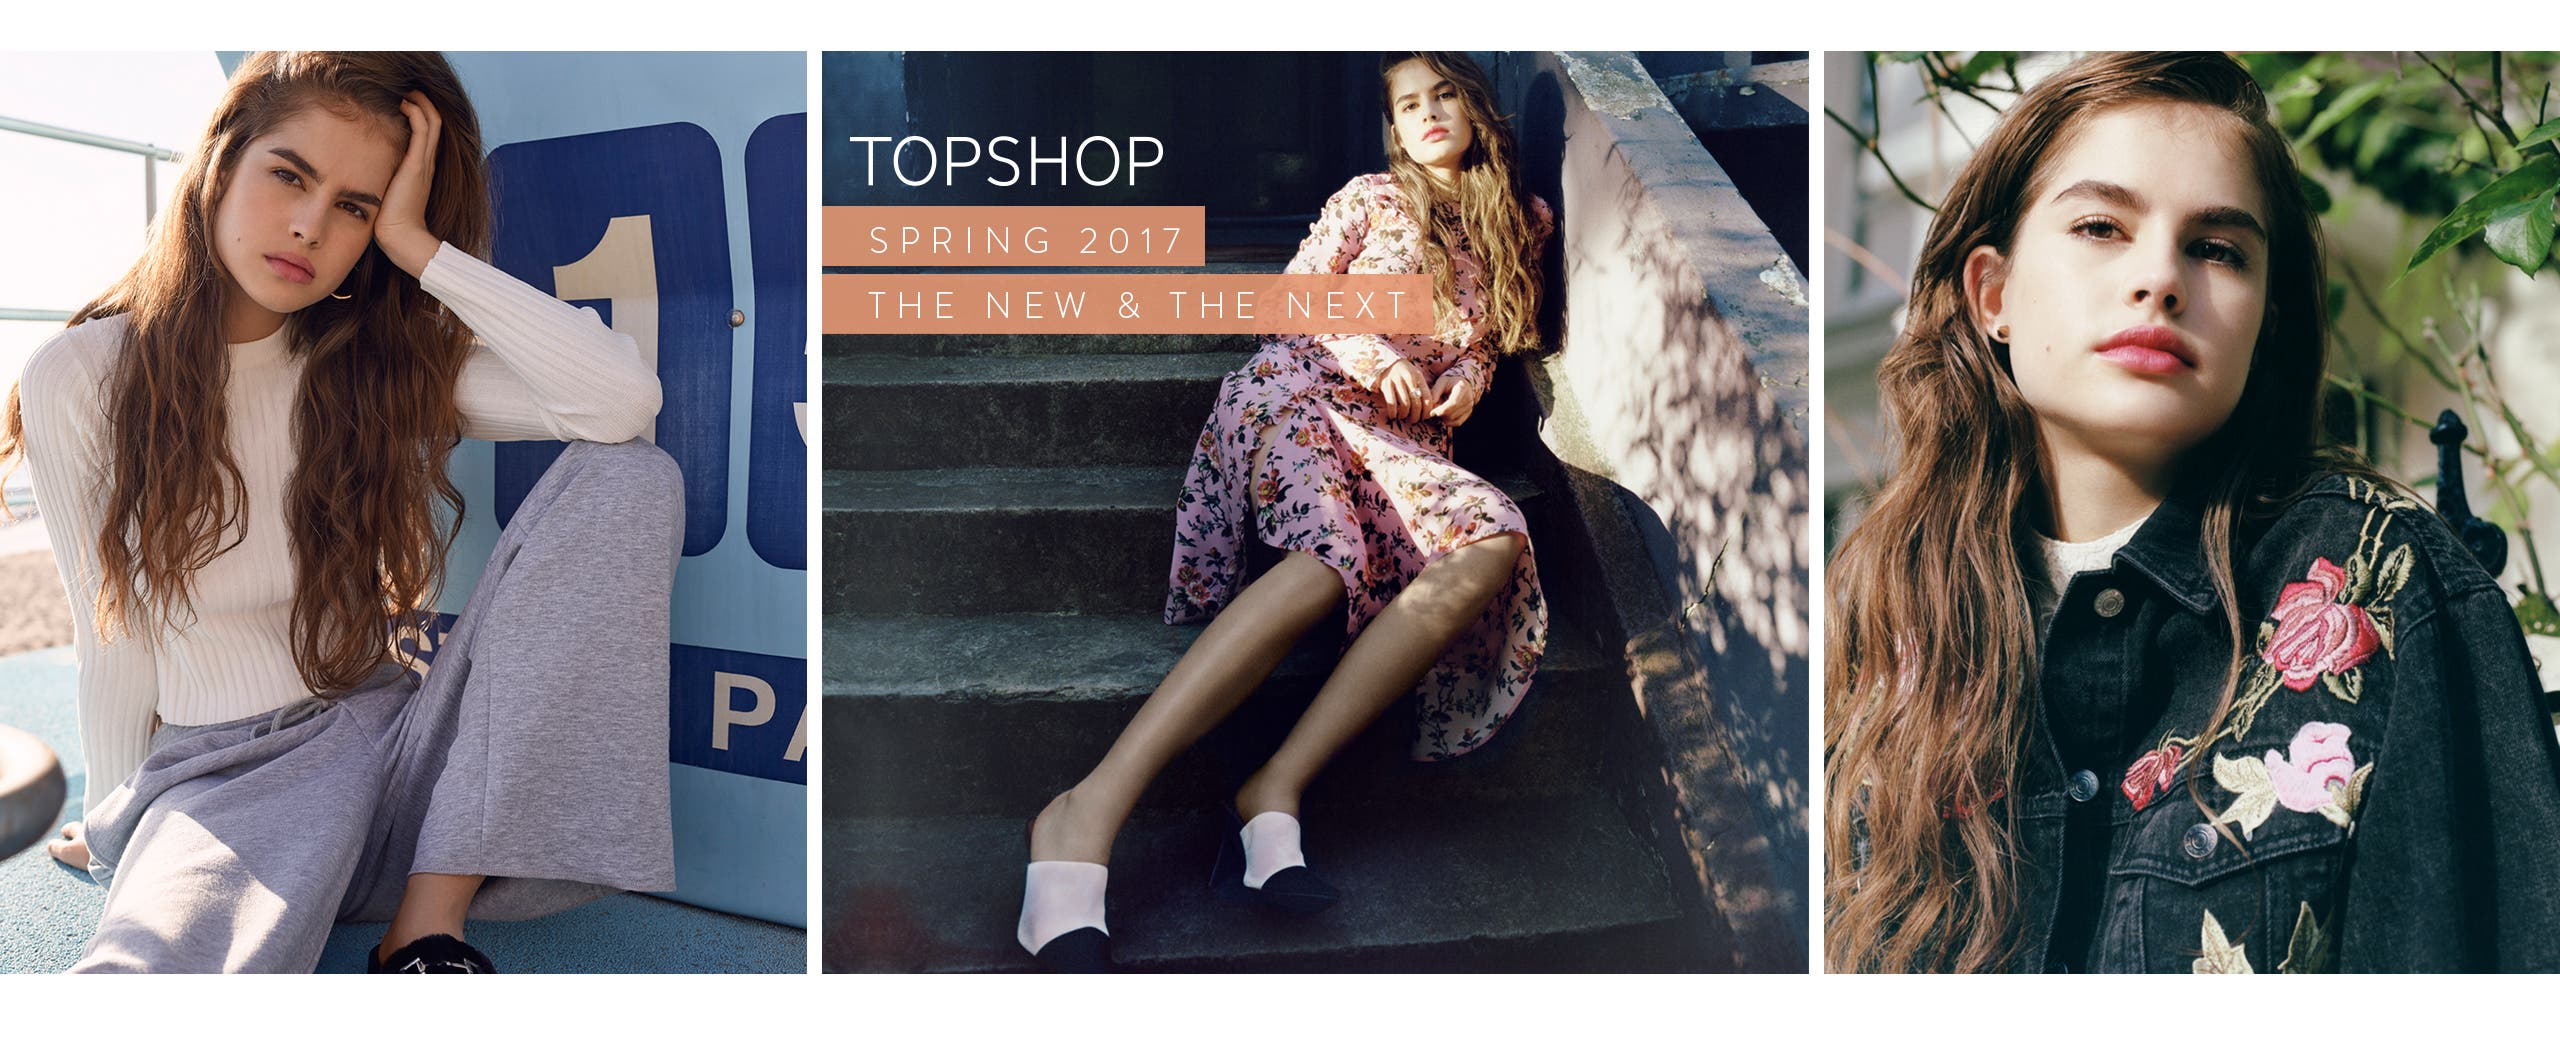 Topshop spring 2017: the new and the next in women's trend clothing, shoes and accessories.